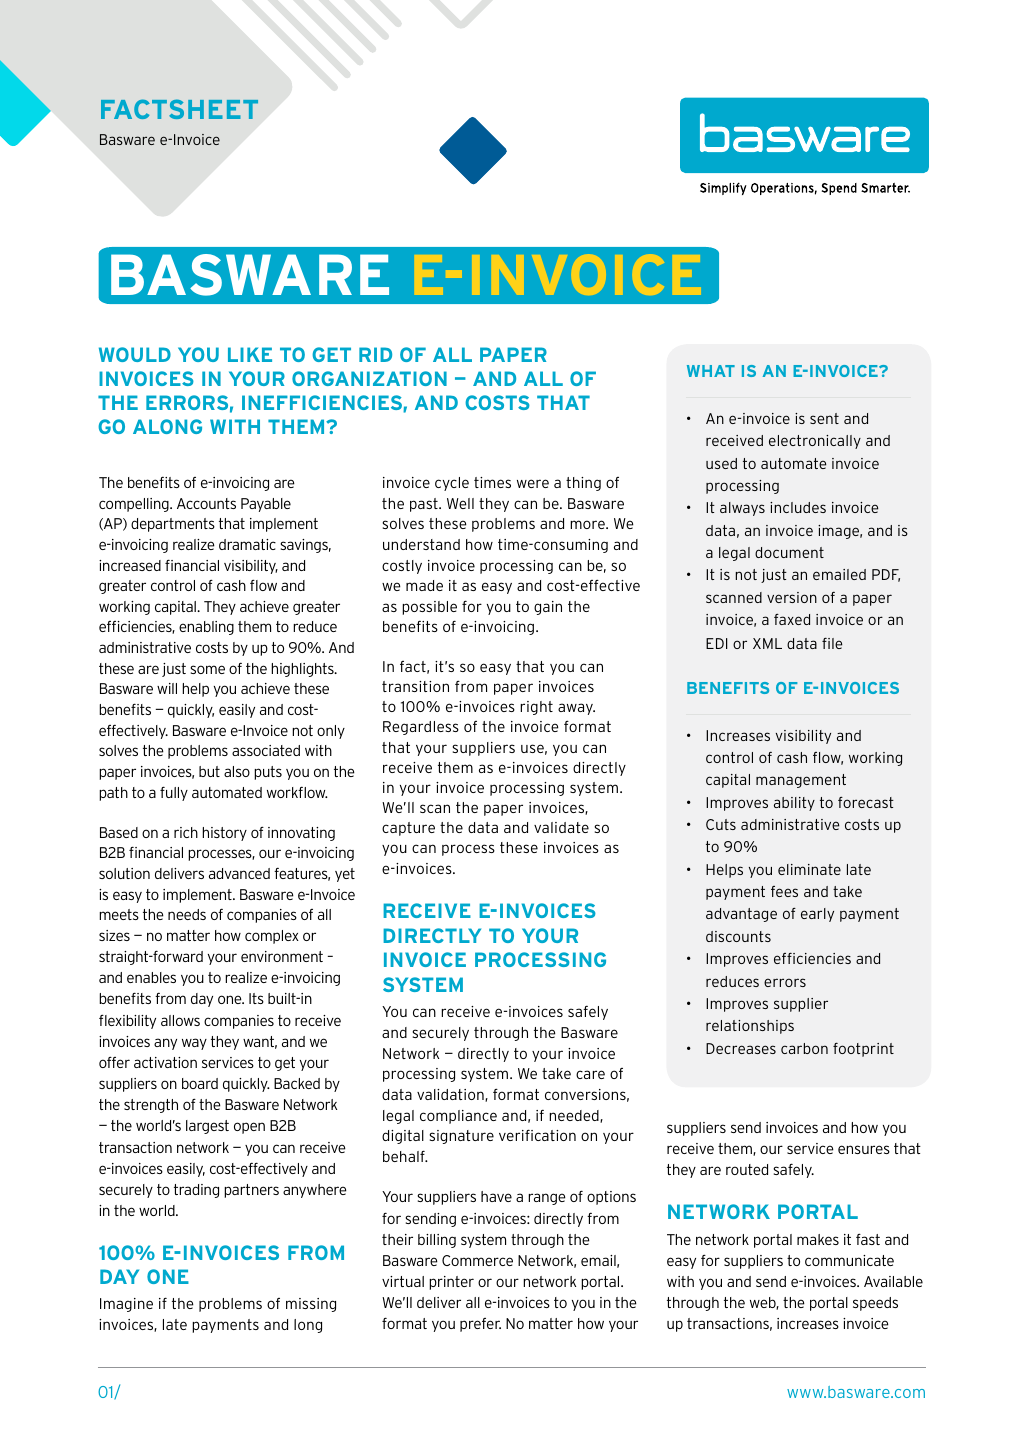 Einvoice Receiving Services Management To Improve Efficiency Basware - Invoice received